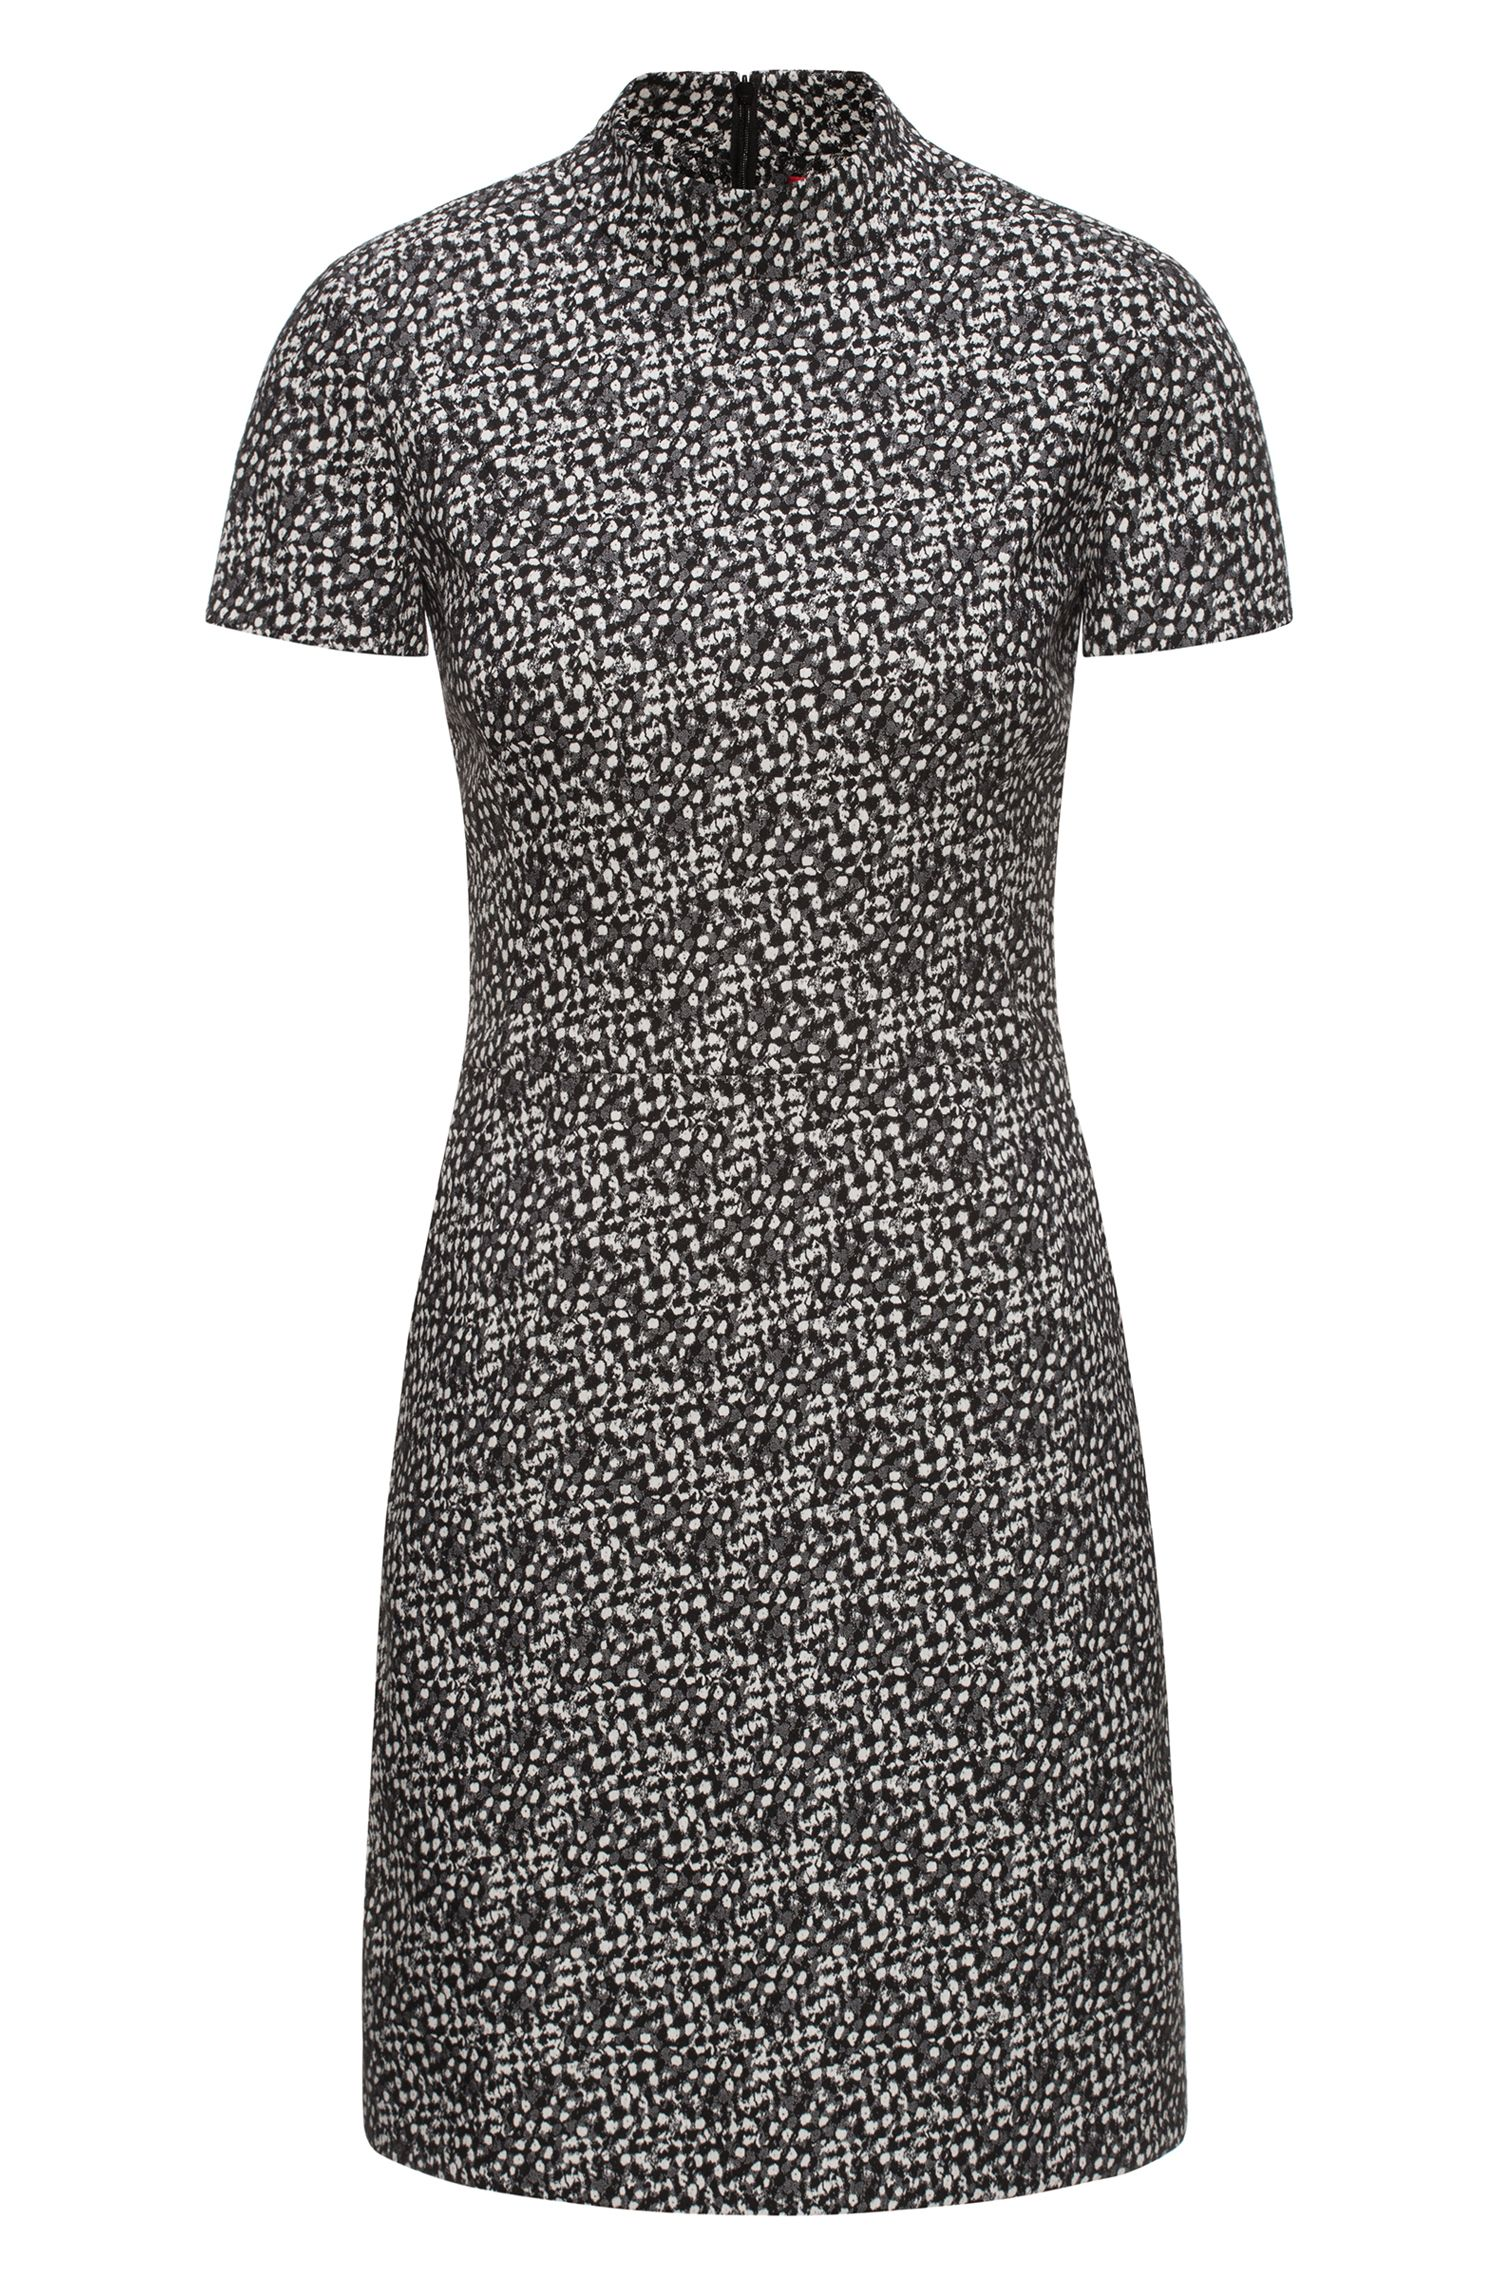 Turtle-neck patterned dress in a cotton blend